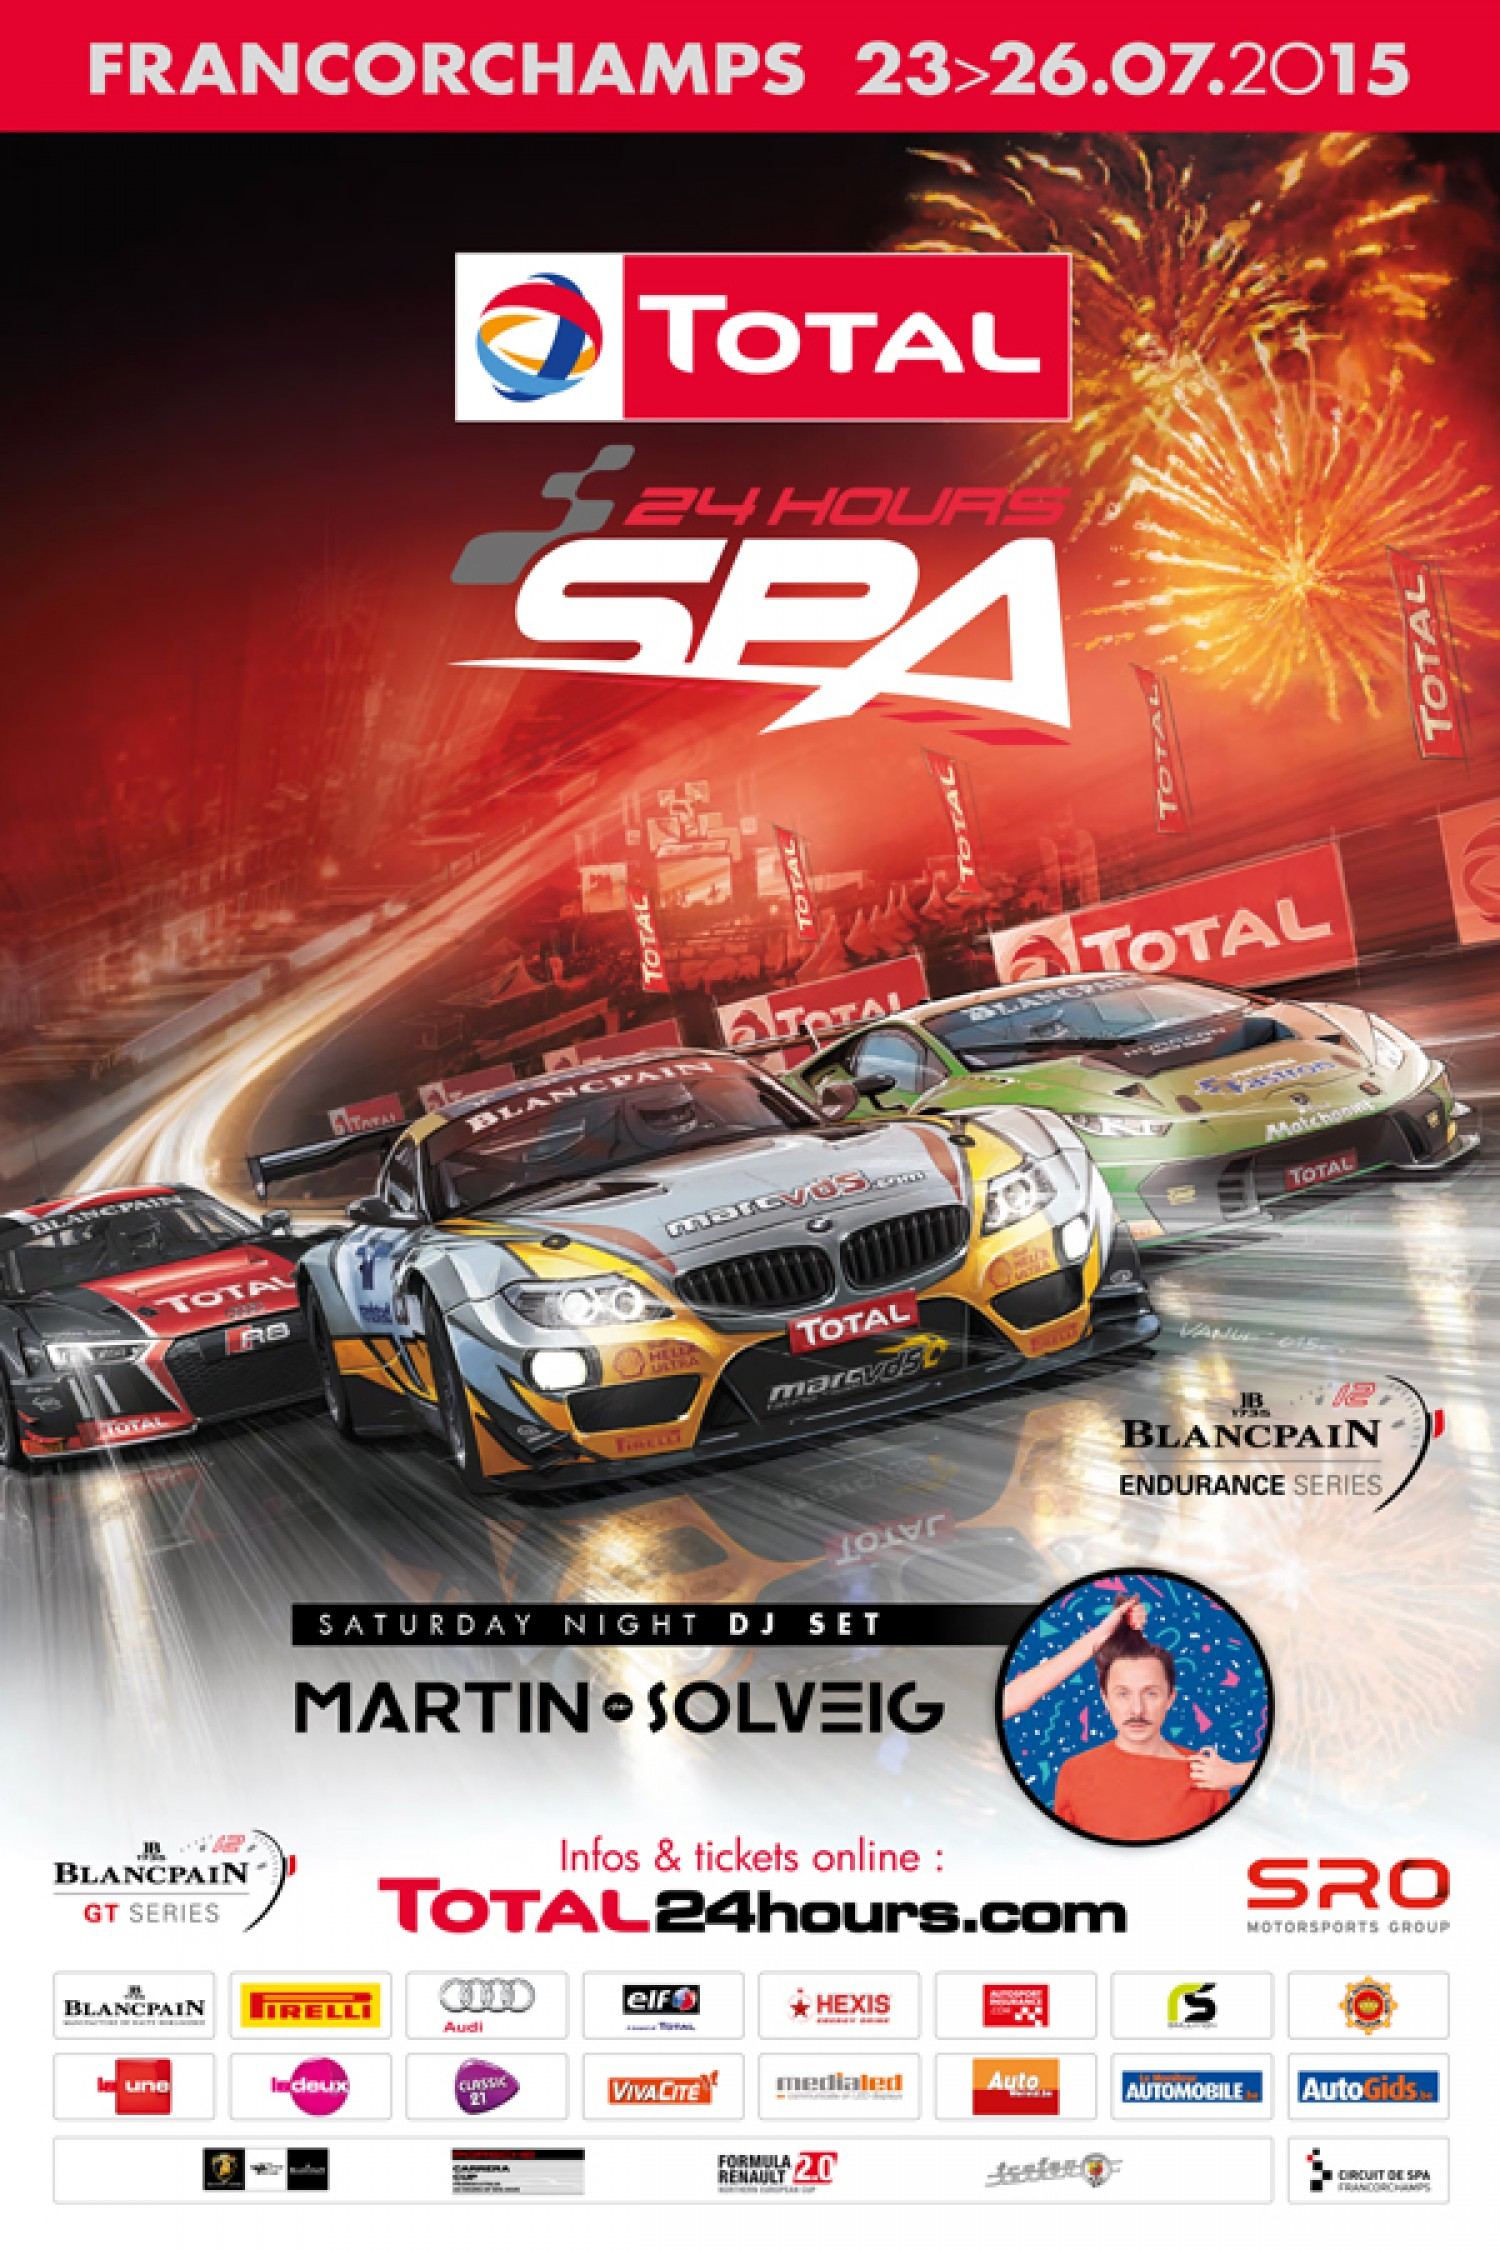 Total 24 Hours of Spa poster revealed - Martin Solveig stars on the Total 24 Hours of Spa stage